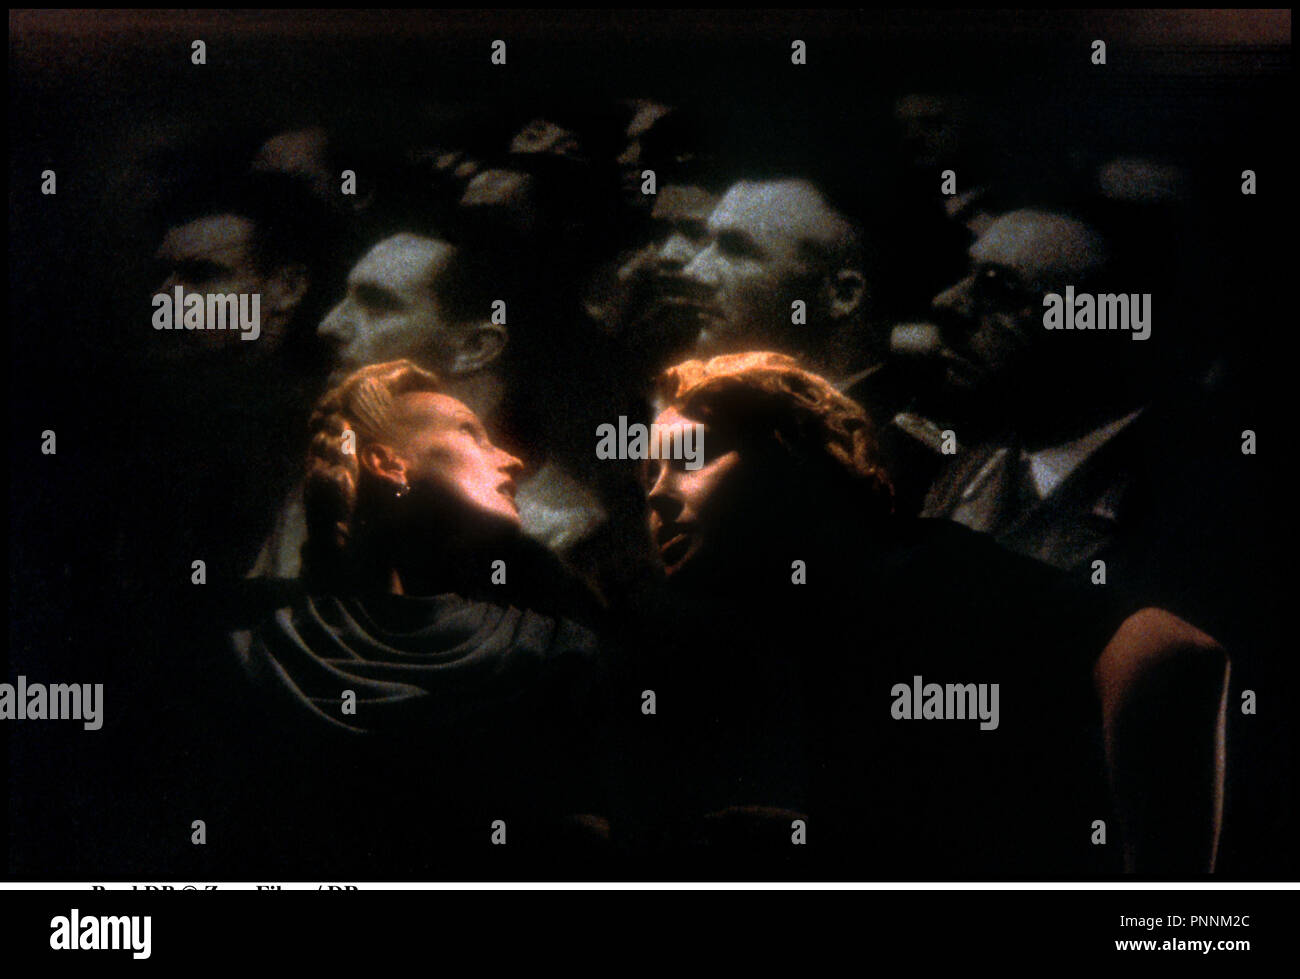 Braun Studio Bandung Moloch Stock Photos Moloch Stock Images Page 3 Alamy